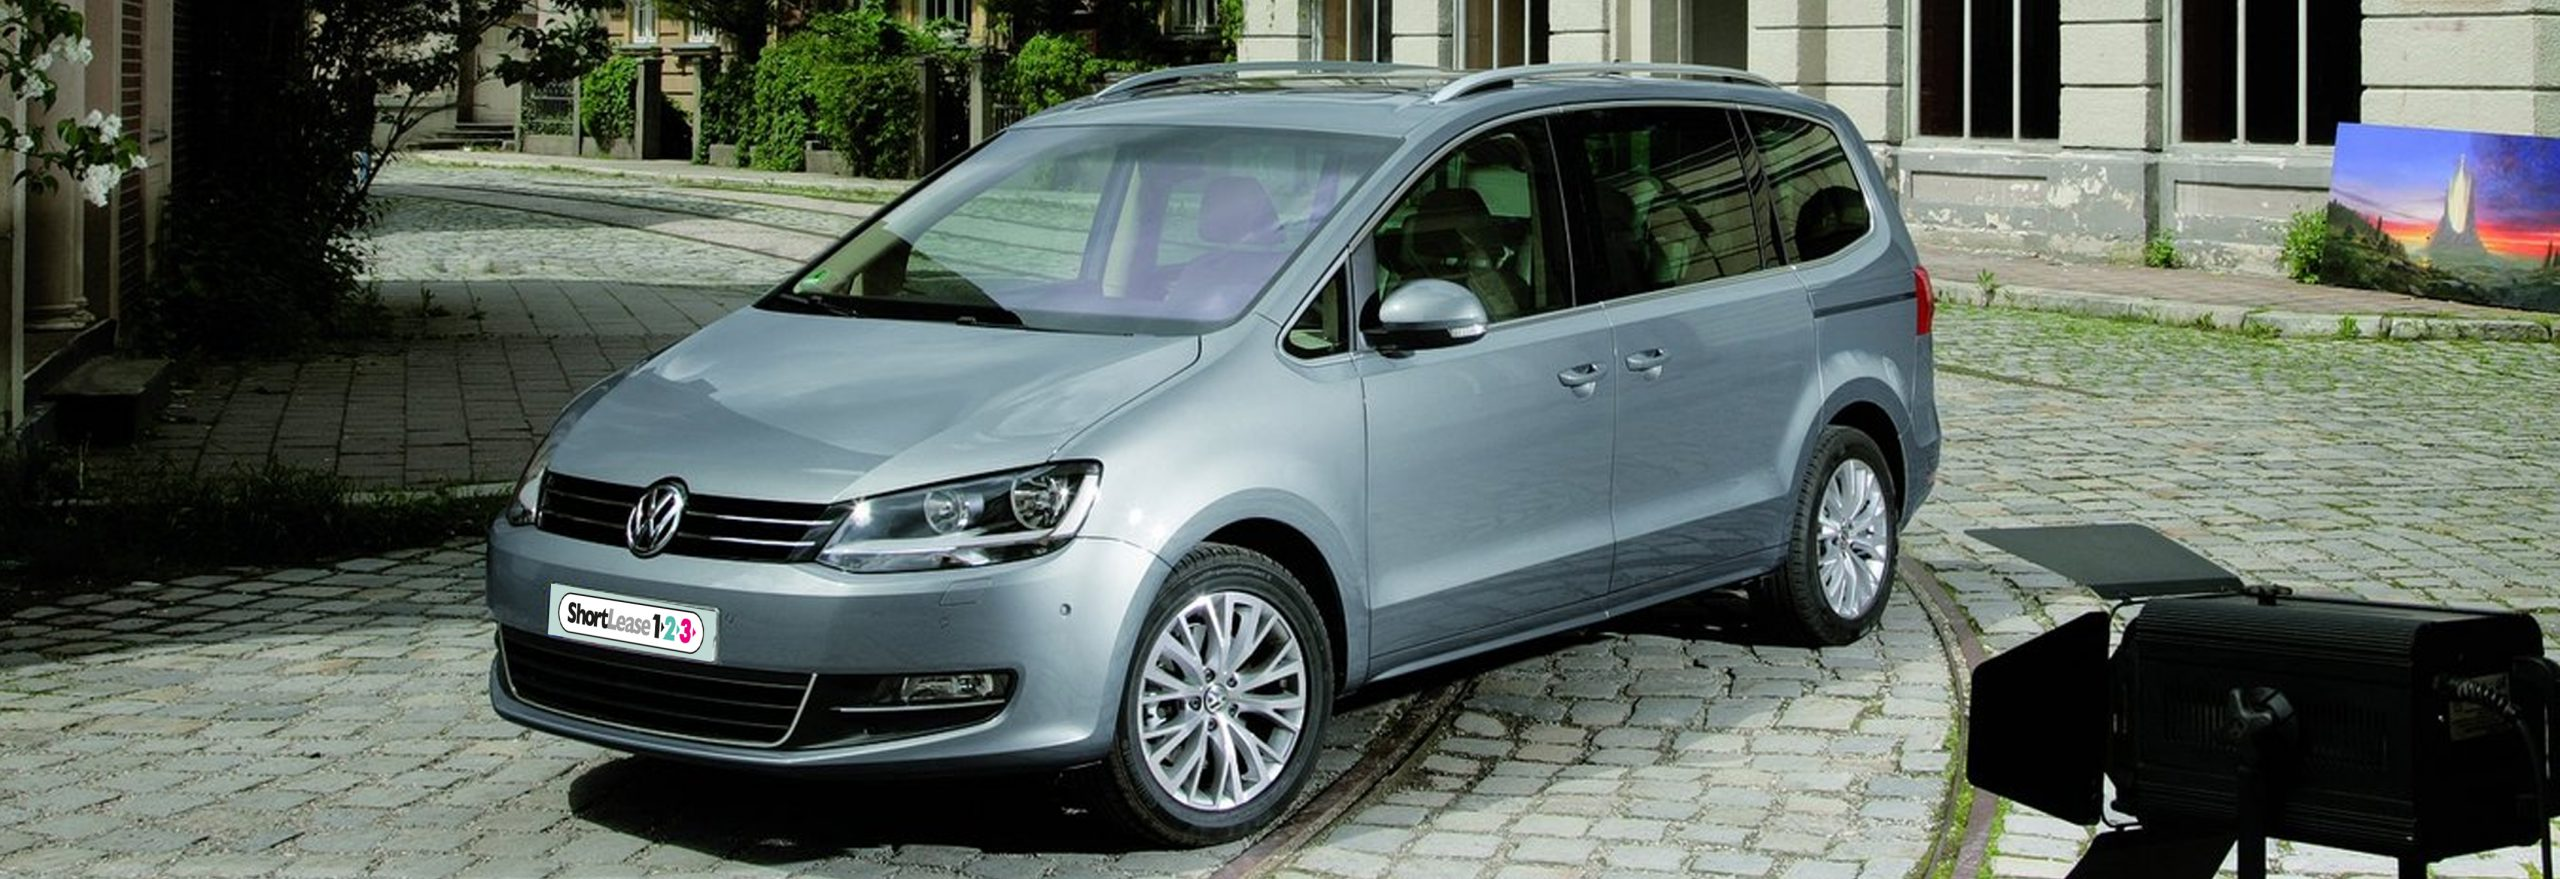 volkswagen sharan comfortline benzine shortlease. Black Bedroom Furniture Sets. Home Design Ideas